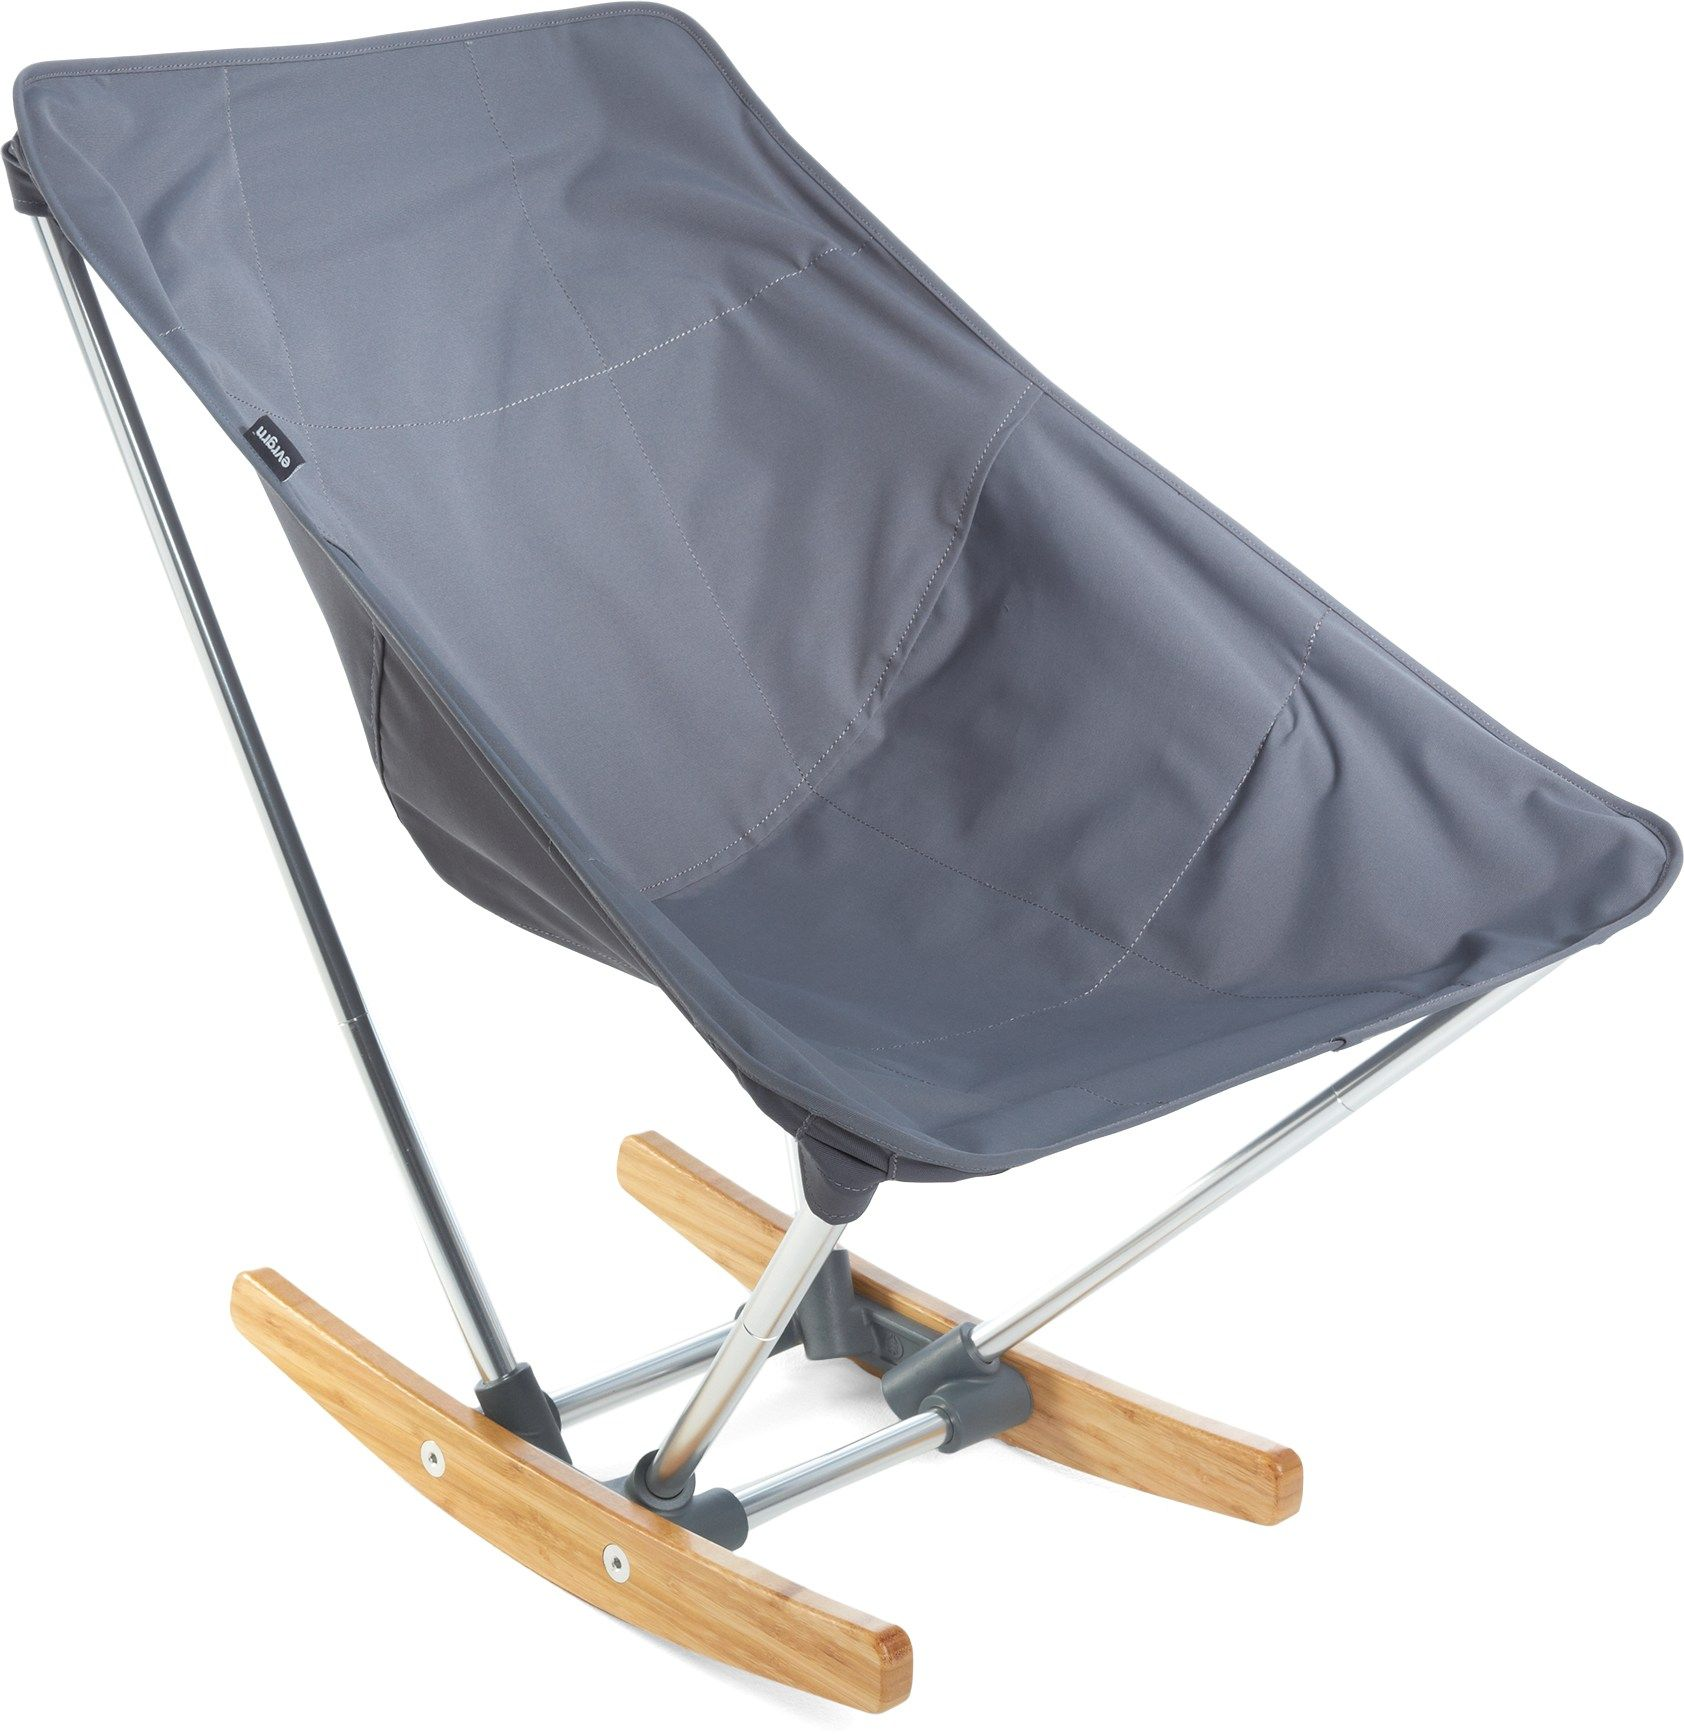 Out of all the backpacking chairs I have tried in REI this one is